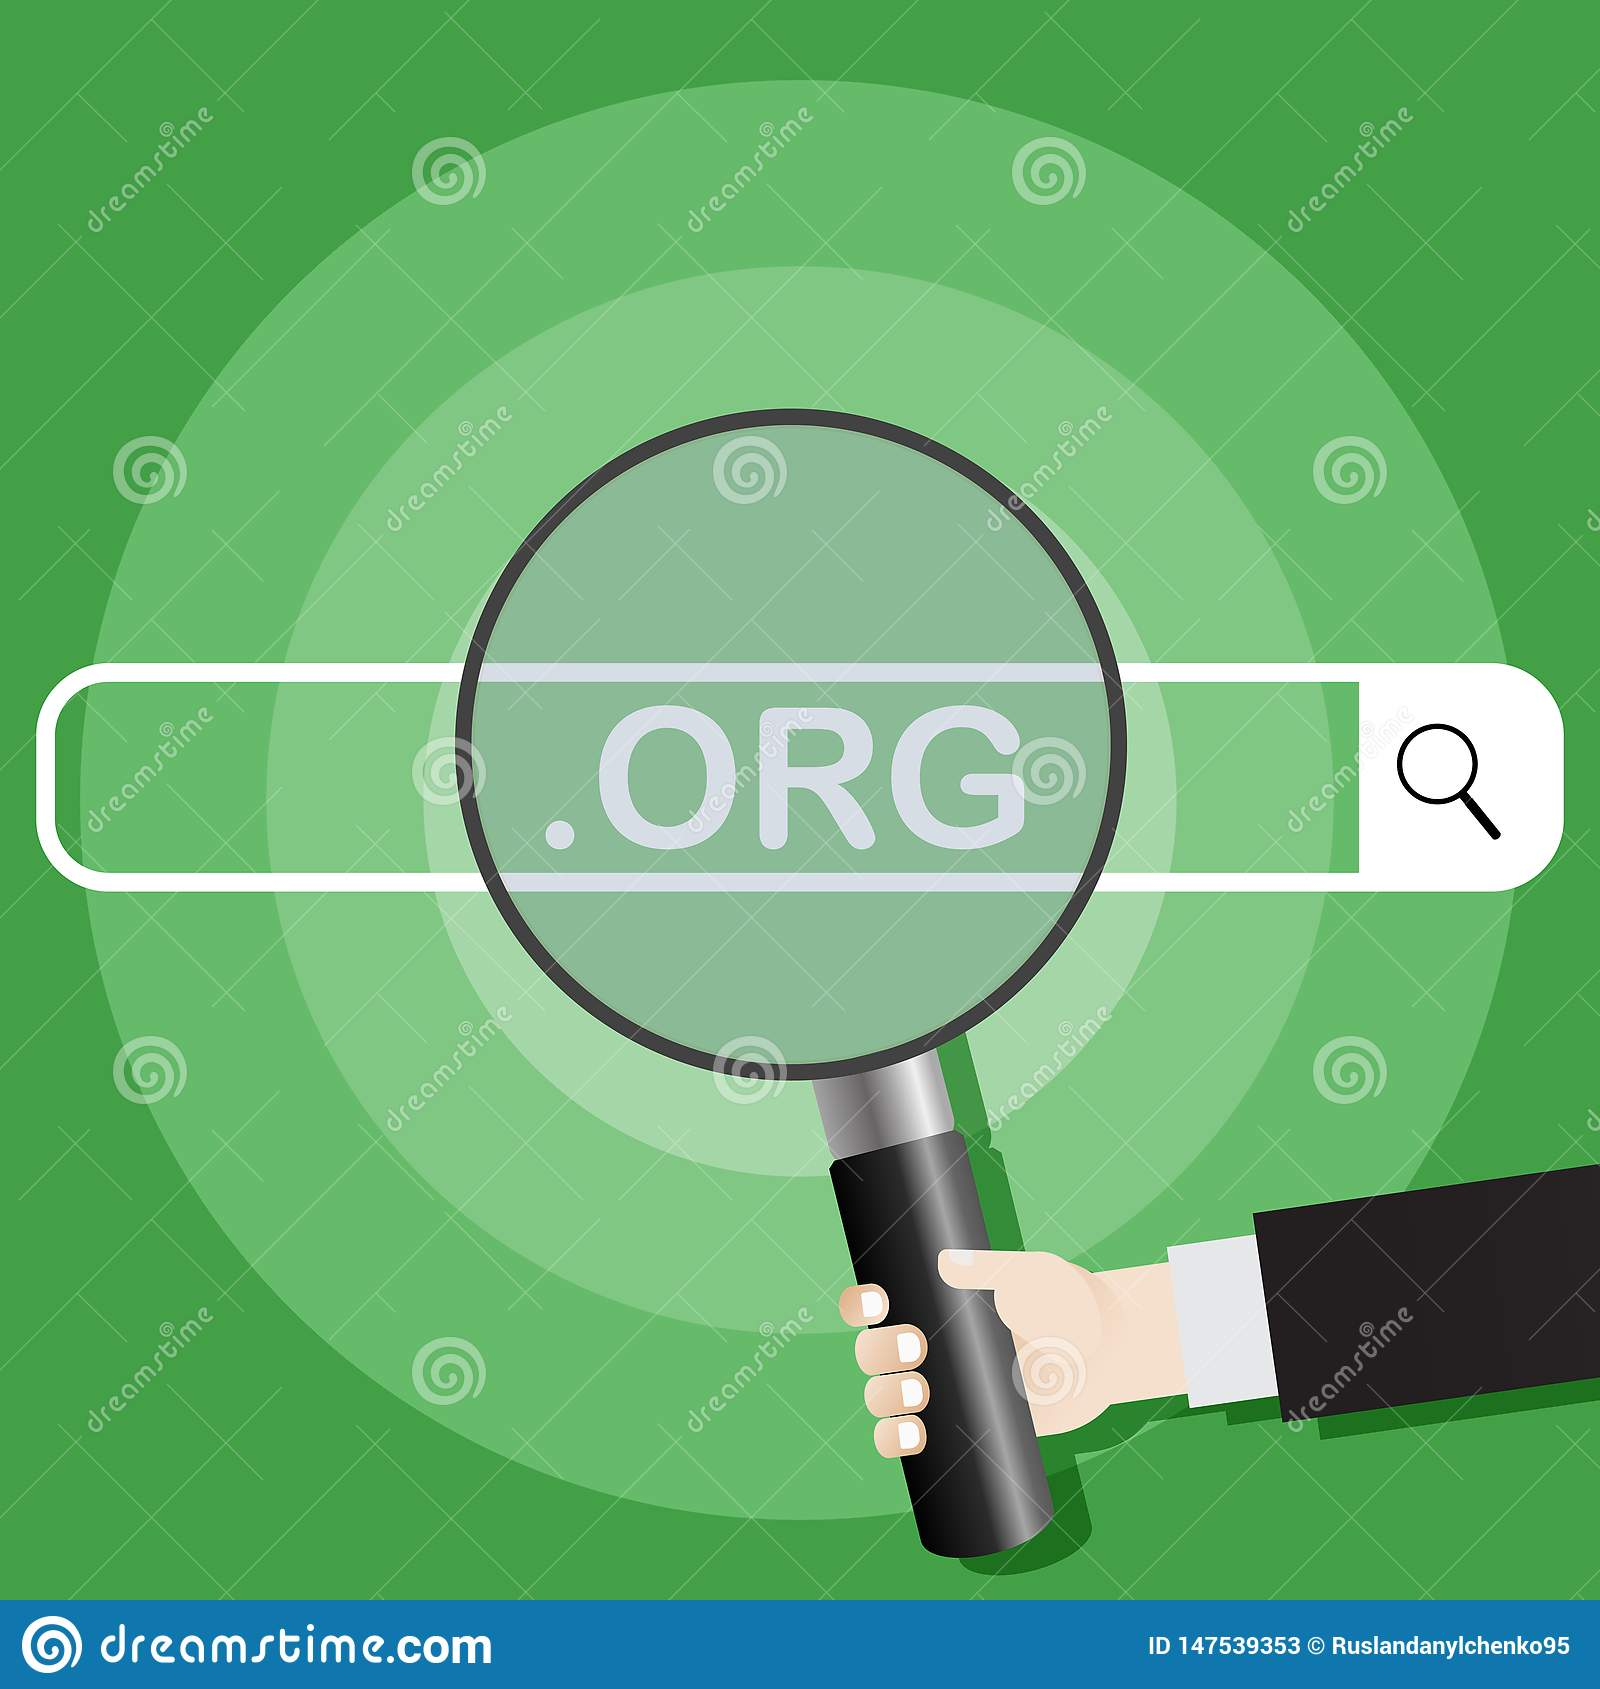 Searching system. Picture of a hand holding a magnifying glass on the search engine org. Vector illustration